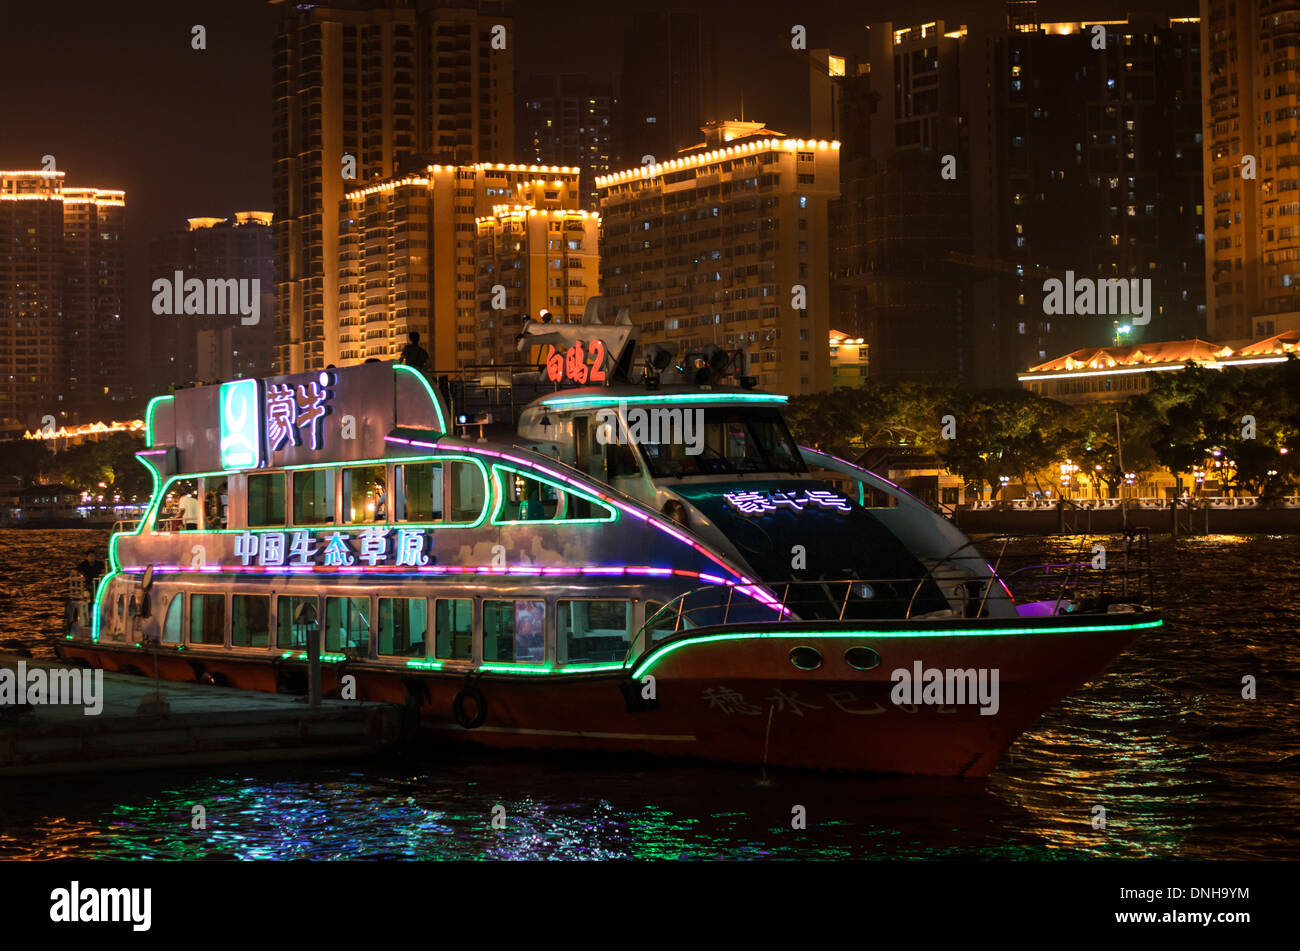 Chinese tourist boat used for night time sightseeing along a major river. - Stock Image